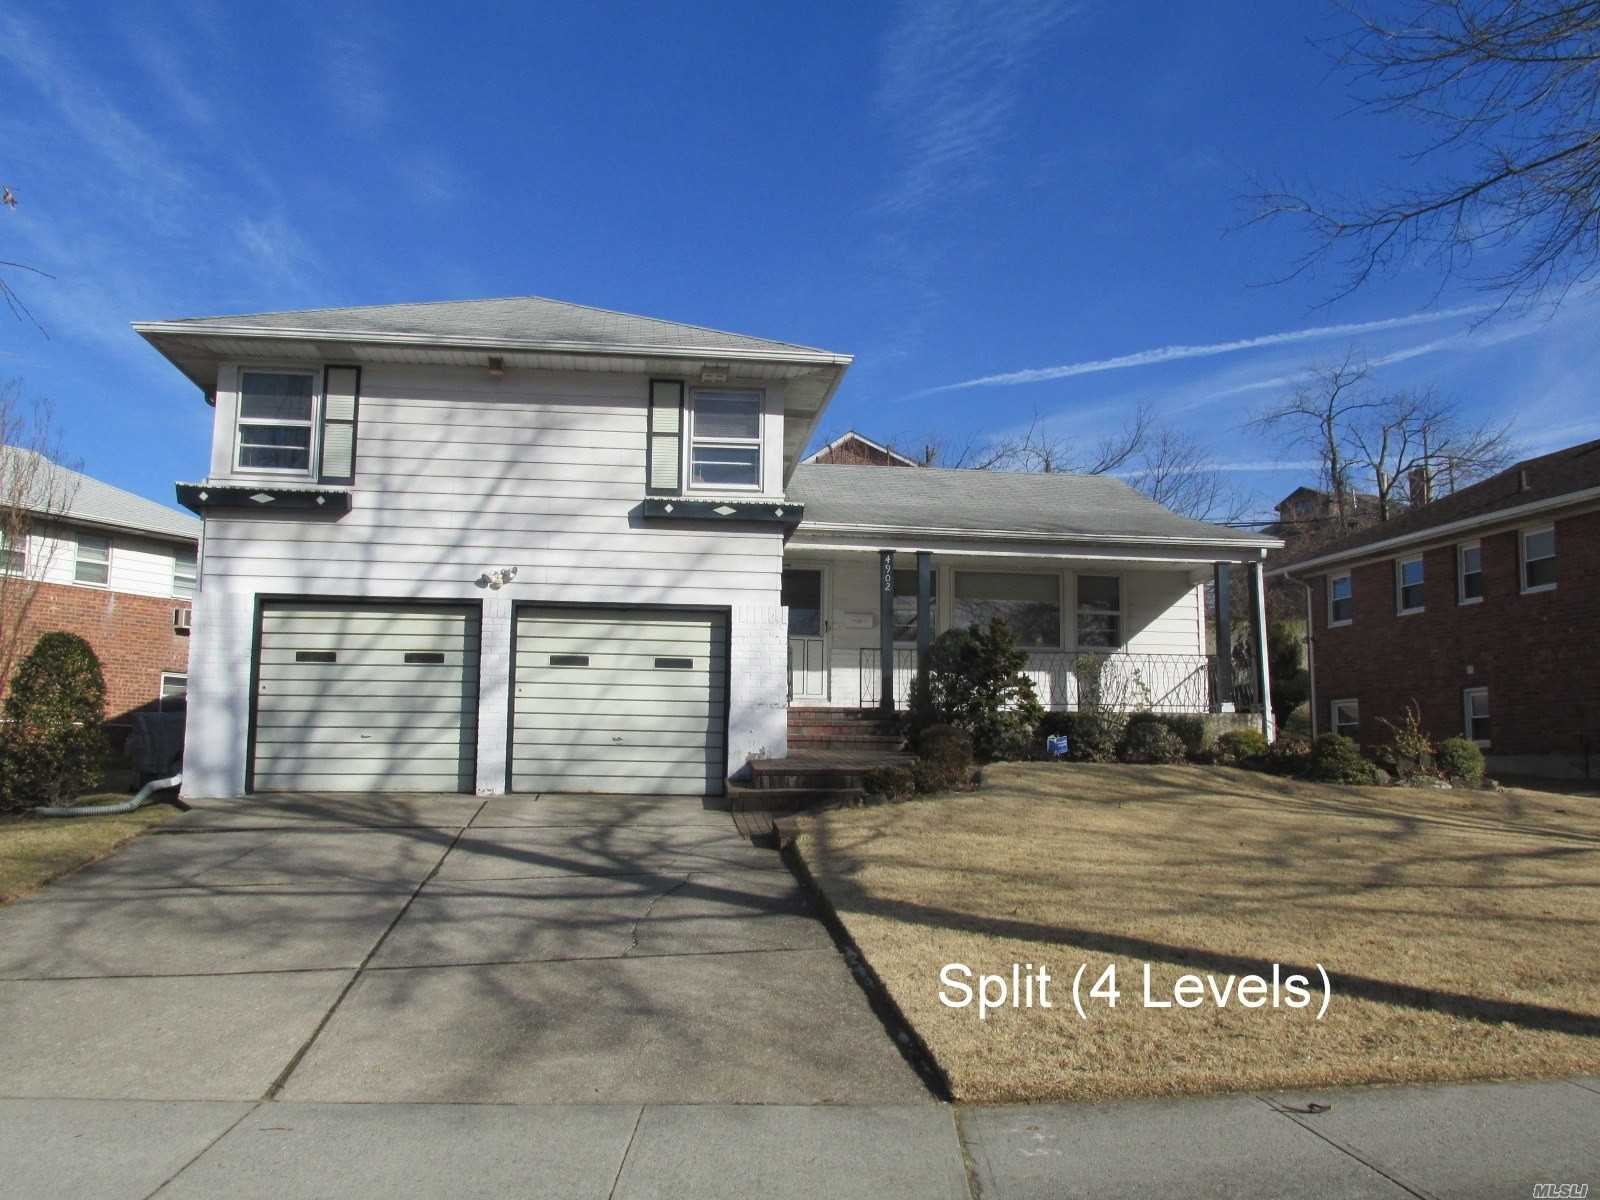 Huge Four Level Split On Over Sized Lot; One Block From Oakland Lake; Hardwood Floors Throughout; Attached Two Car Garage Plus Family Room; Brick Fireplace Plus Finished Basement; Three Bedrooms/Two Full Baths.